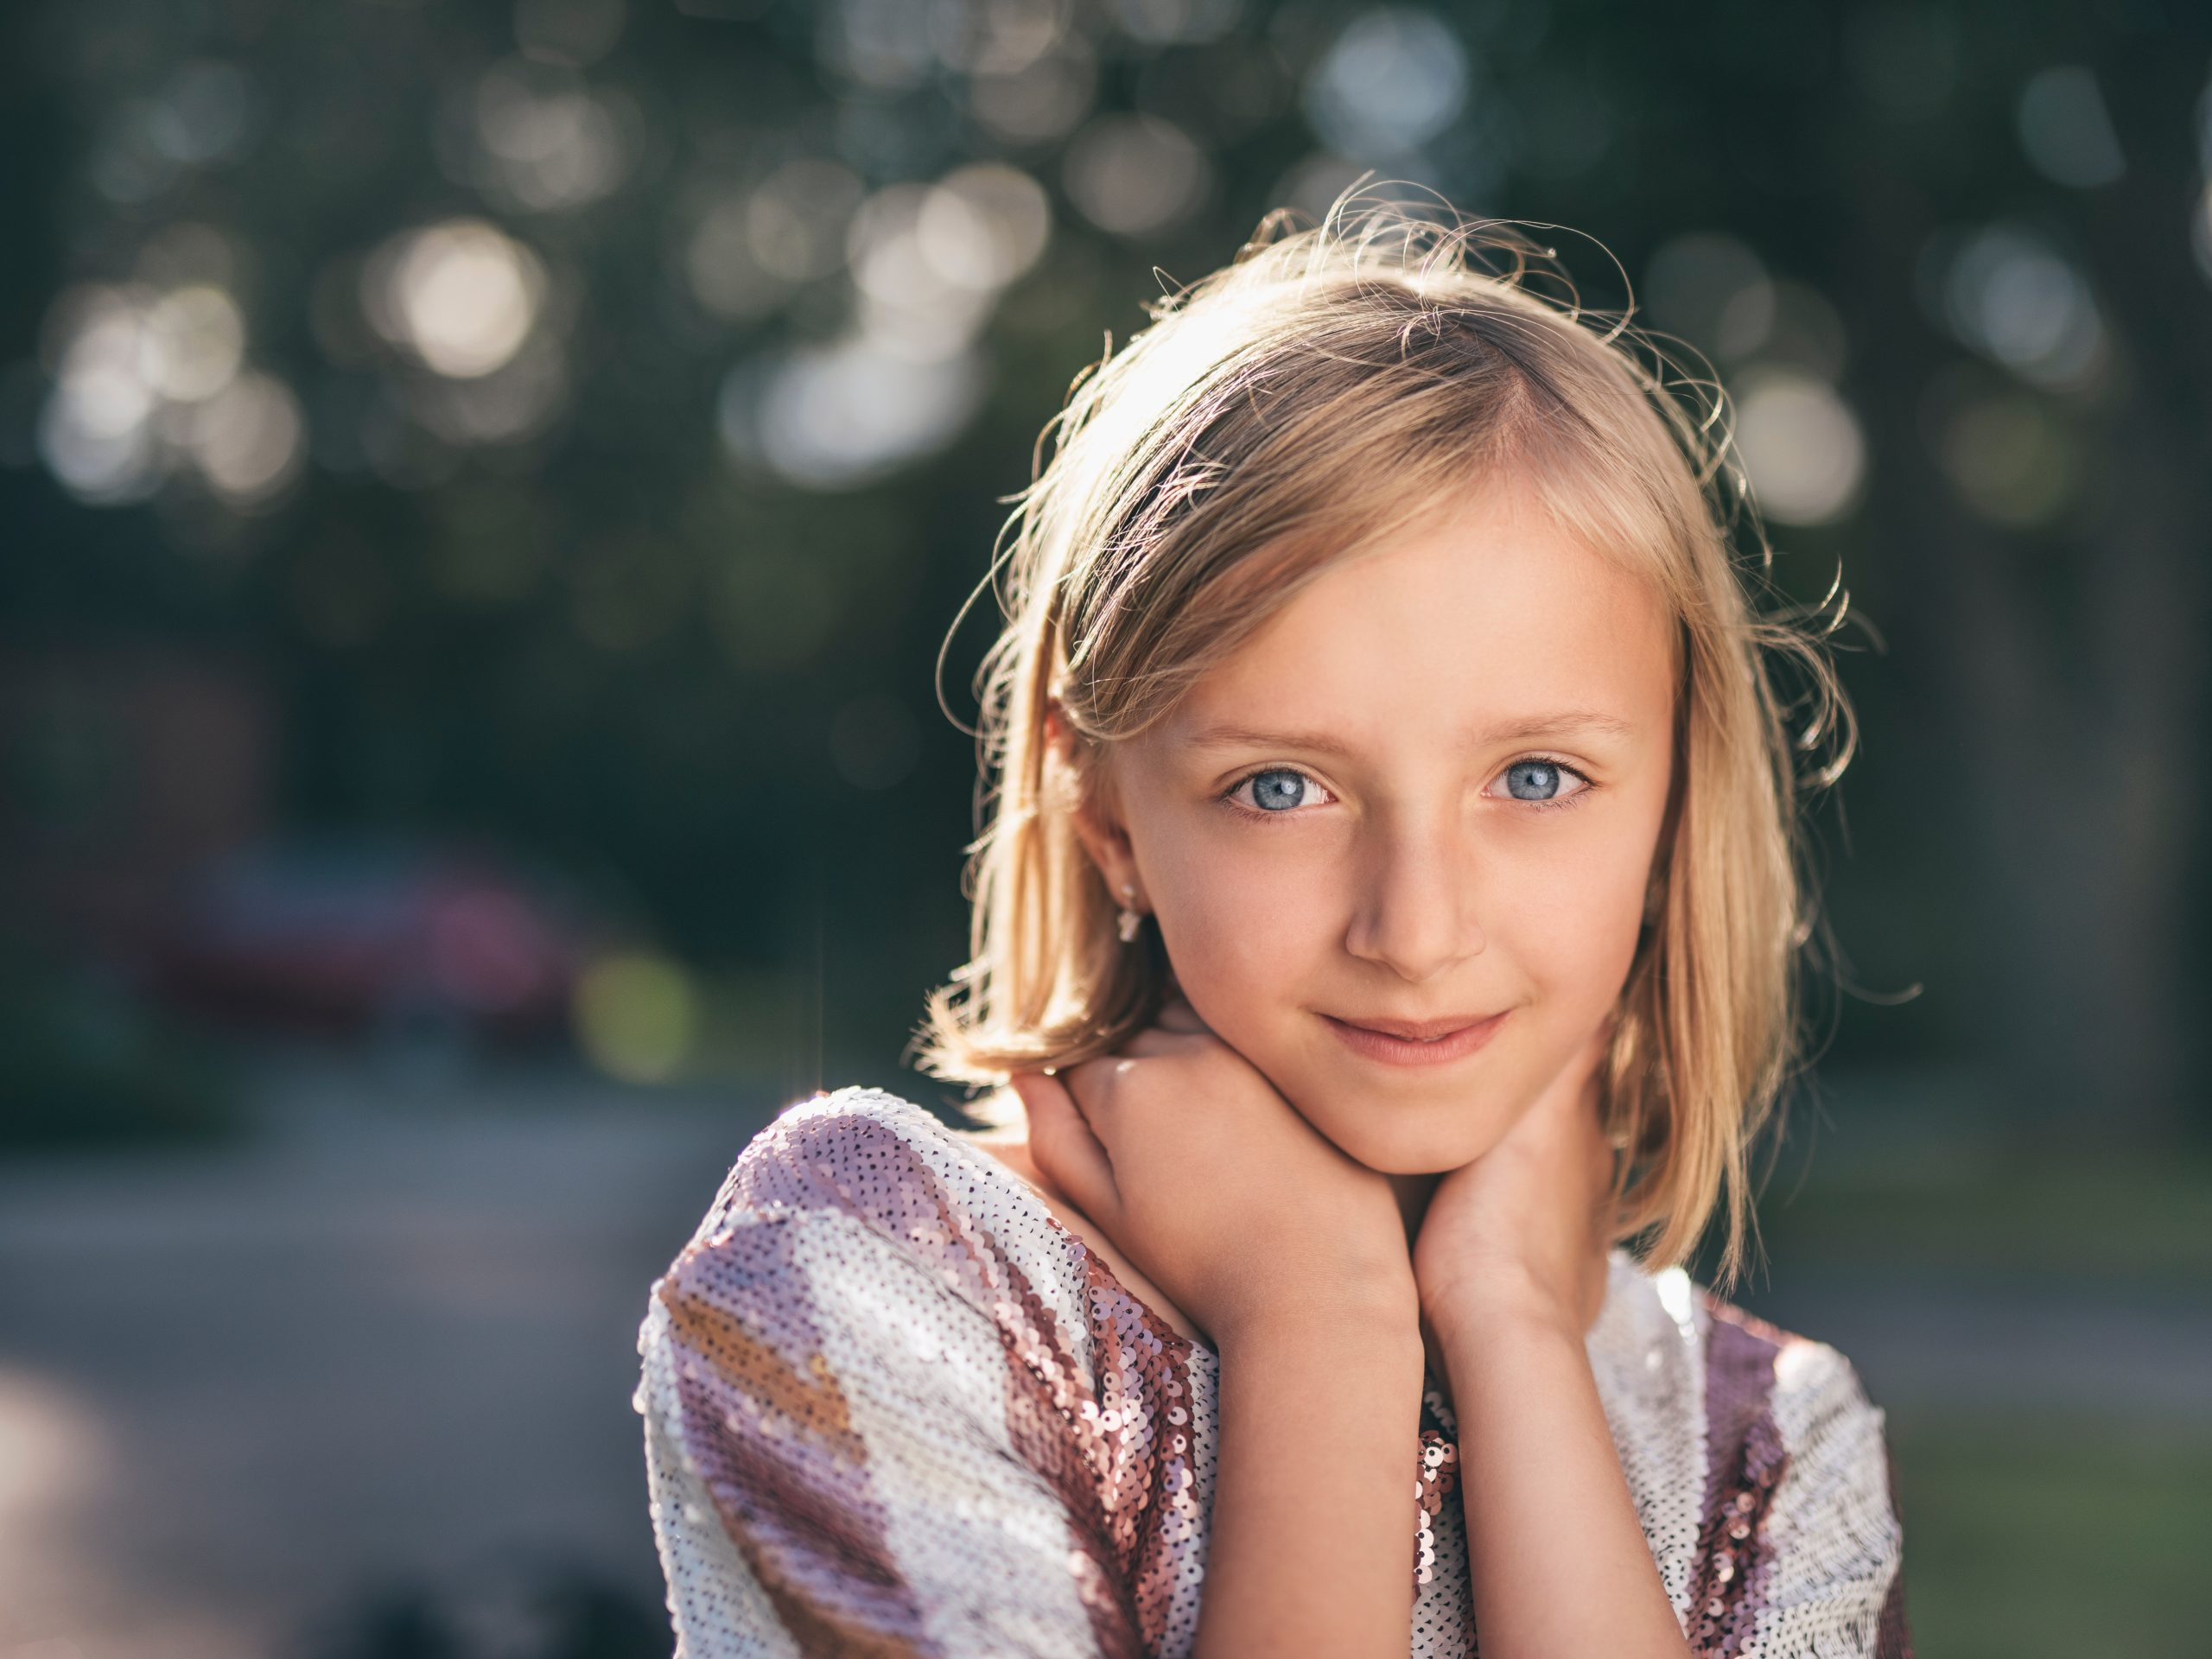 5 Tips For Teaching Your Daughter About Modesty